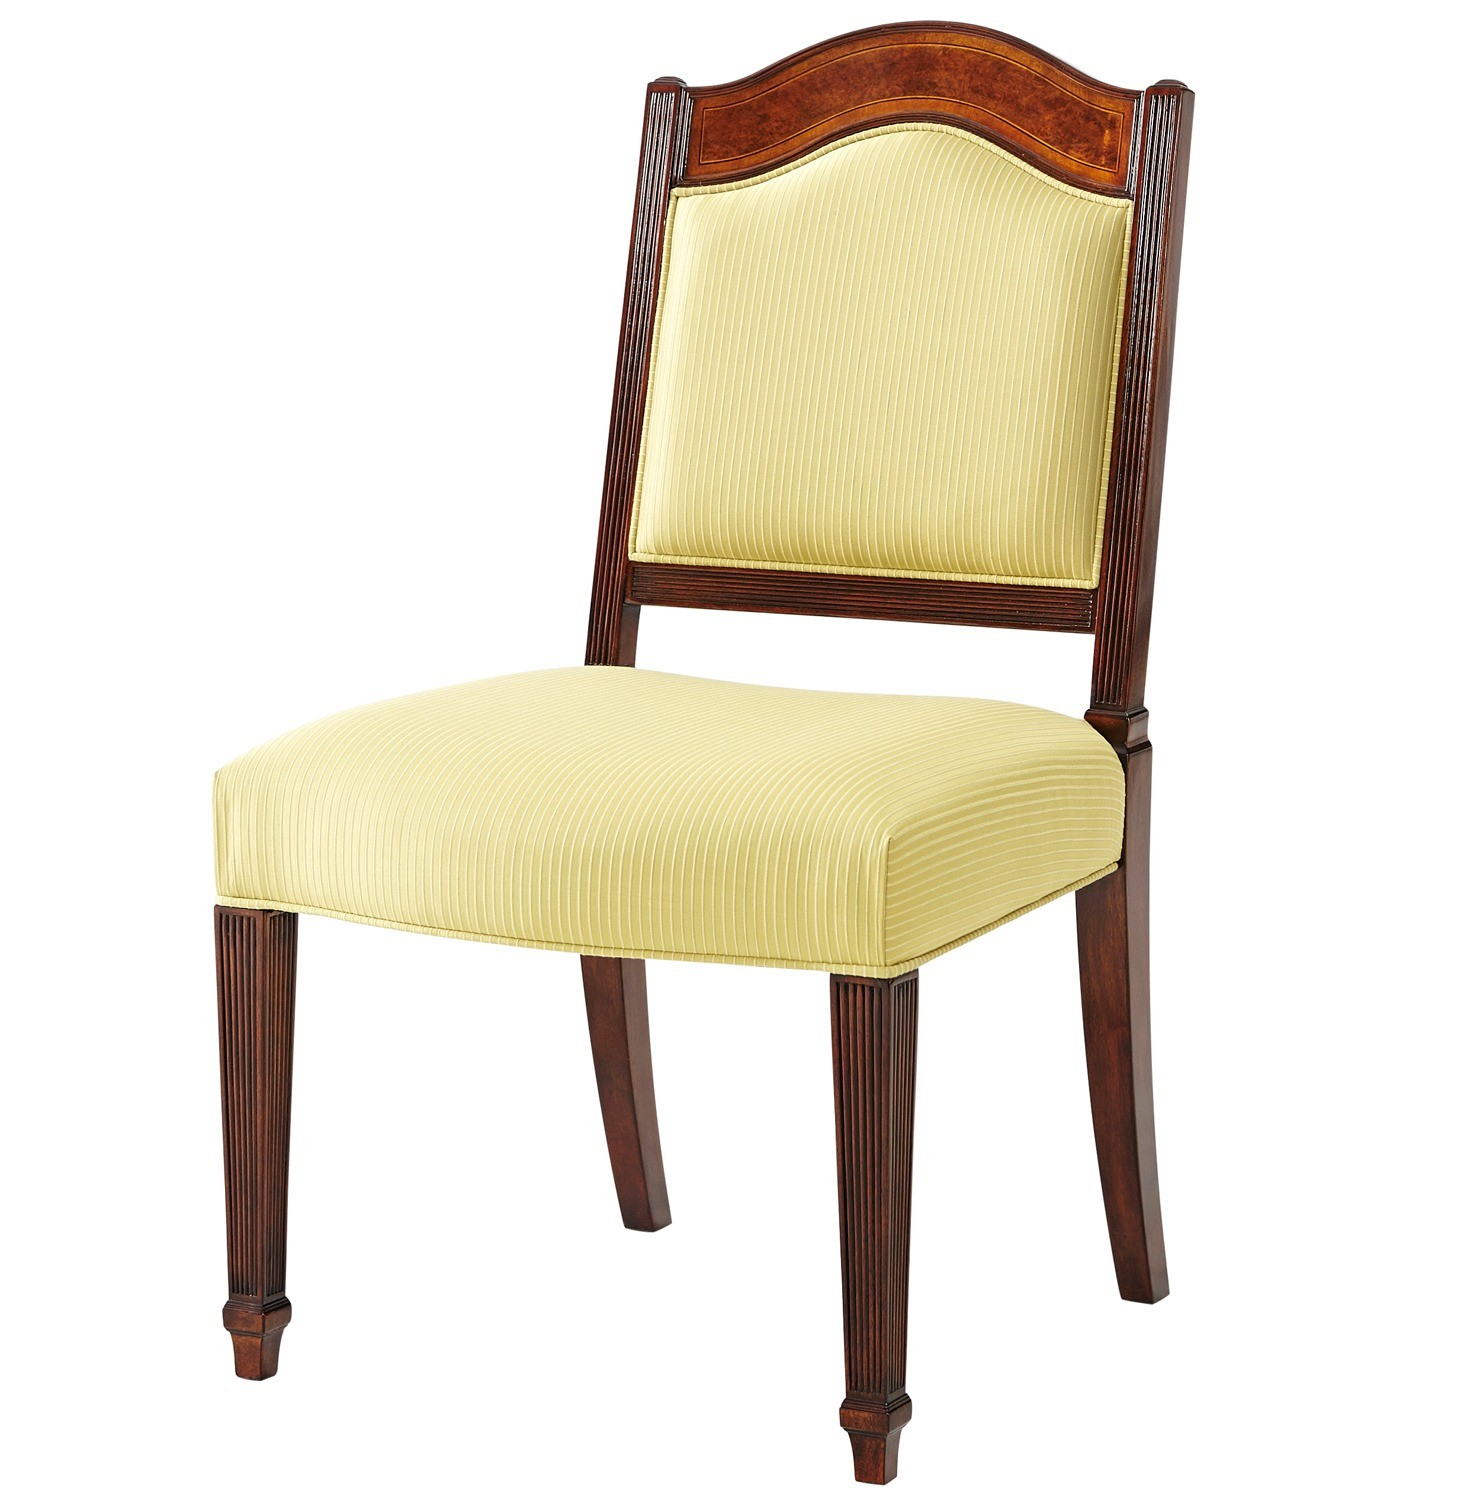 Thomas Sheraton Style Dining Chair, Dining Chairs From